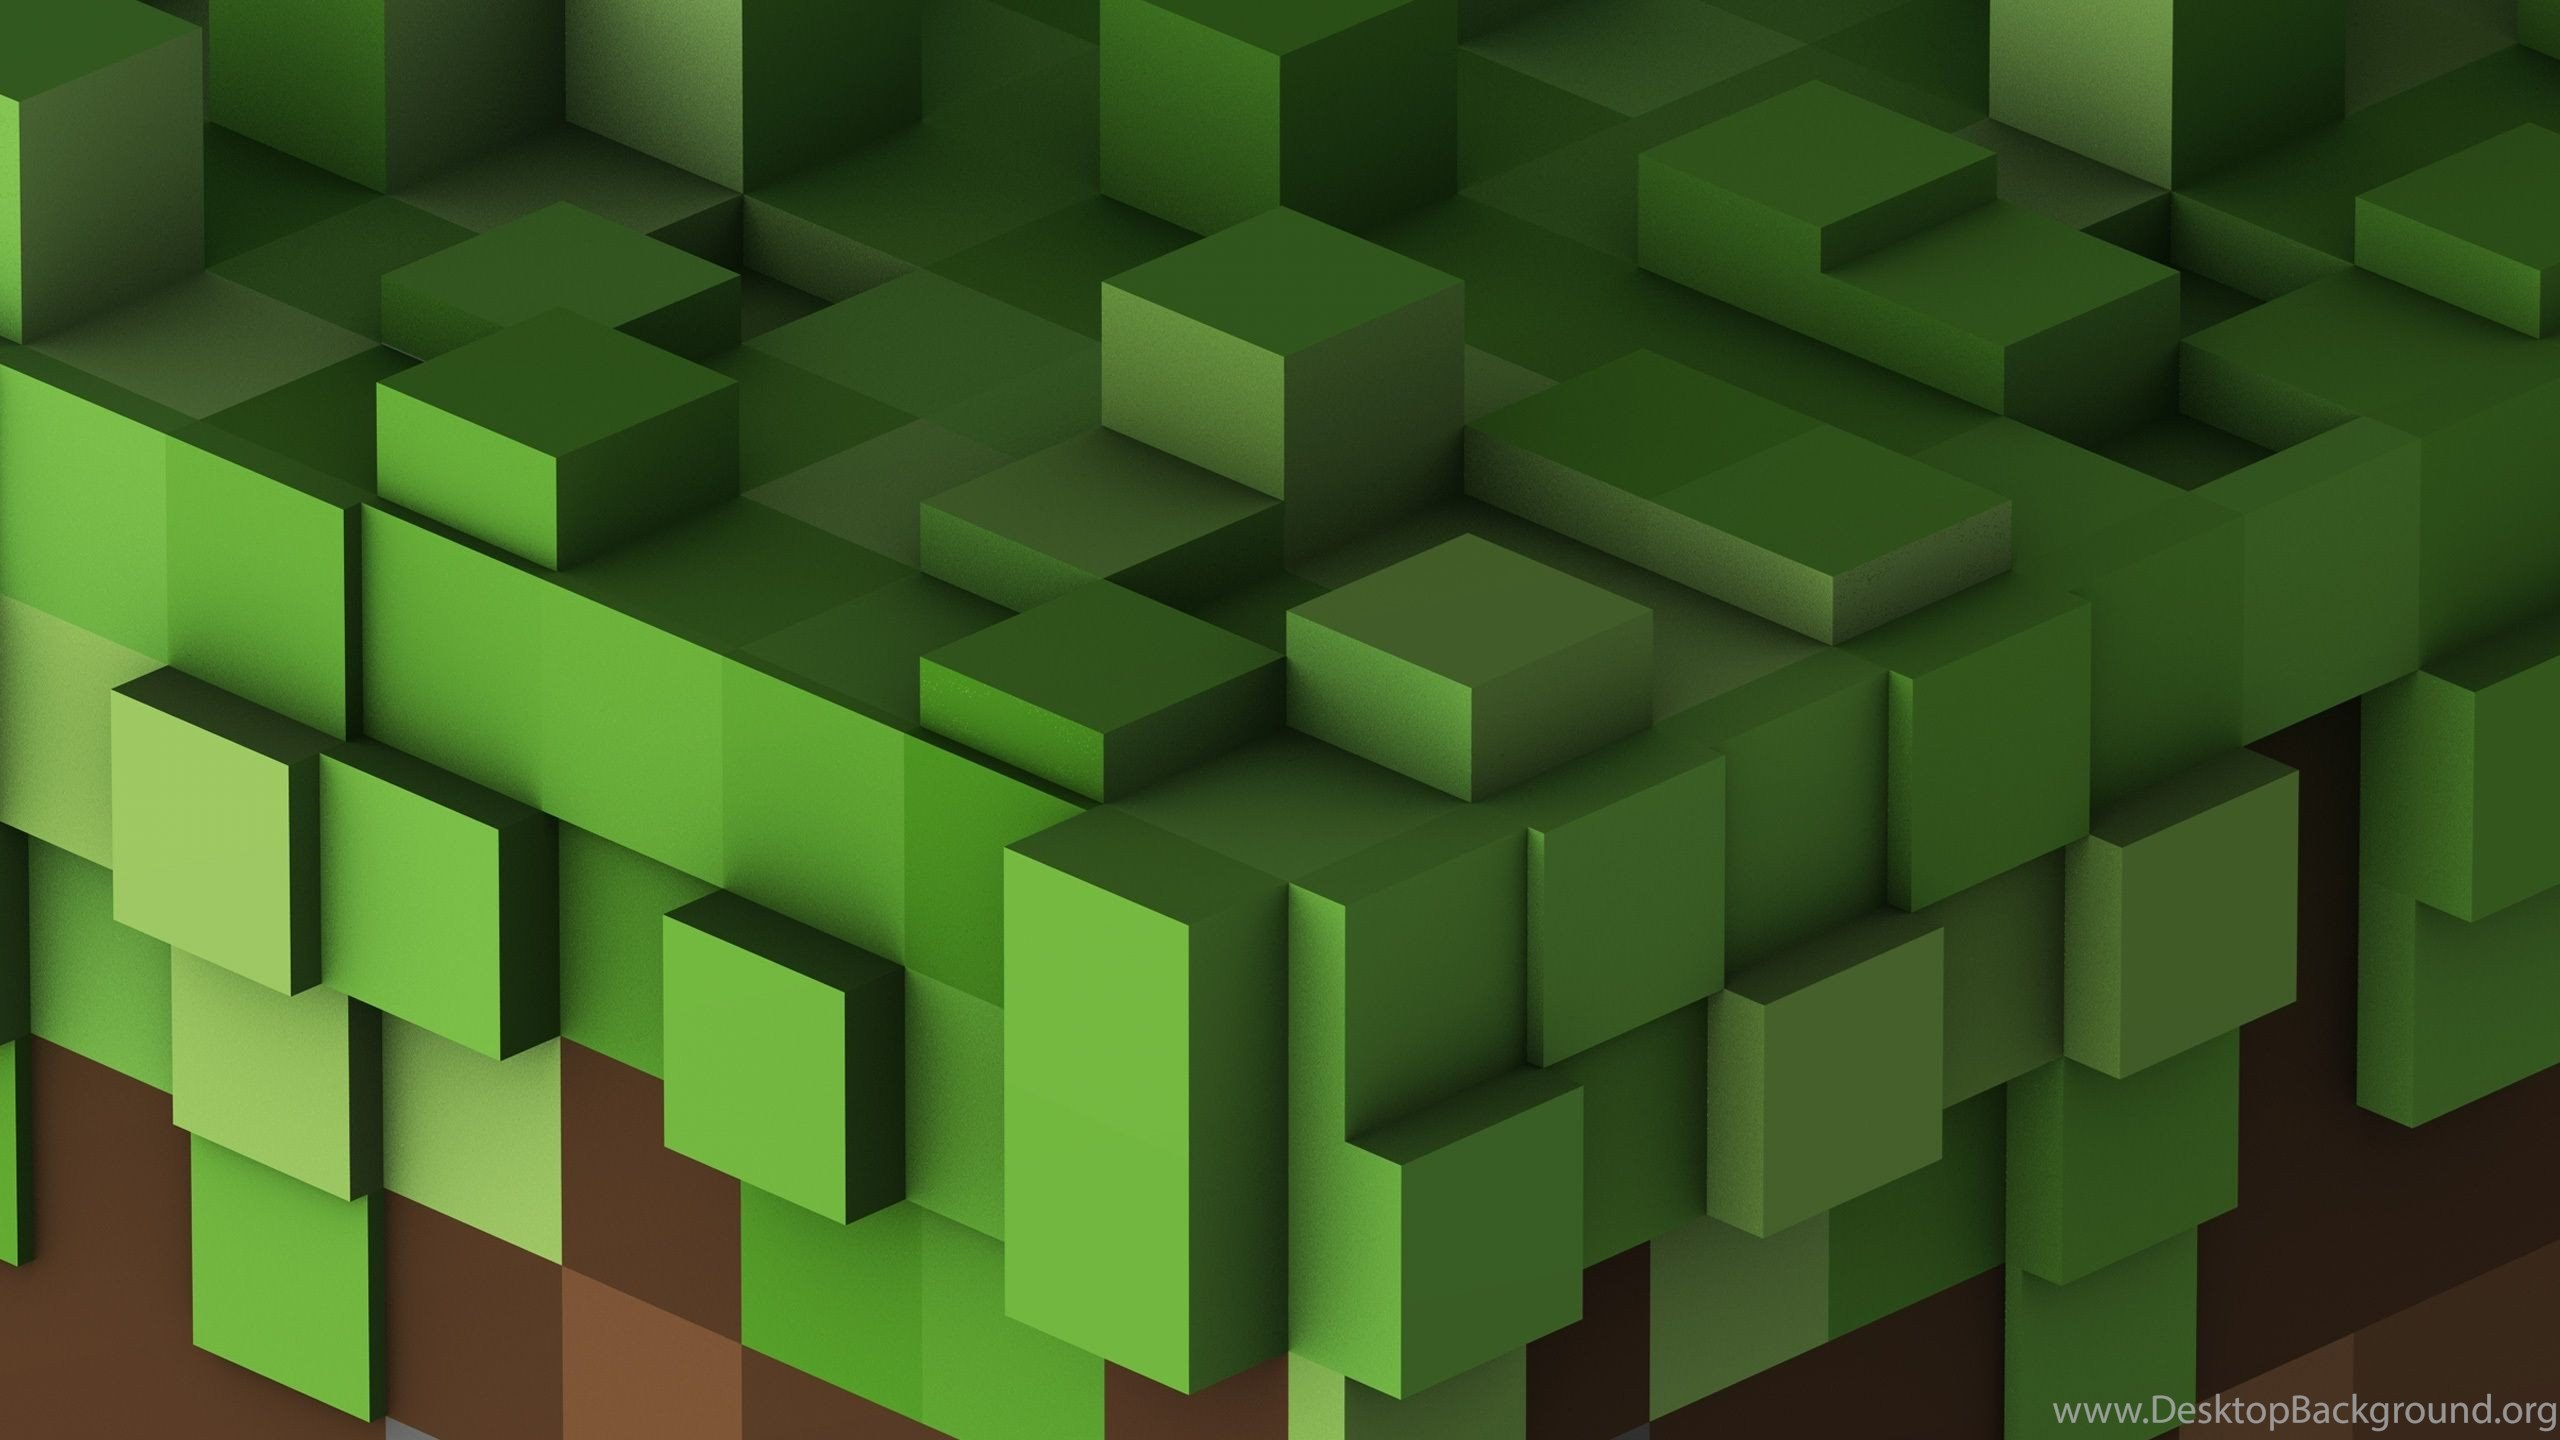 Popular Wallpaper Minecraft Youtube - 935899_wallpapers-minecraft-pictures-by-chewtoons-on-youtube-photo-in_2560x1440_h  Picture_282741.jpg